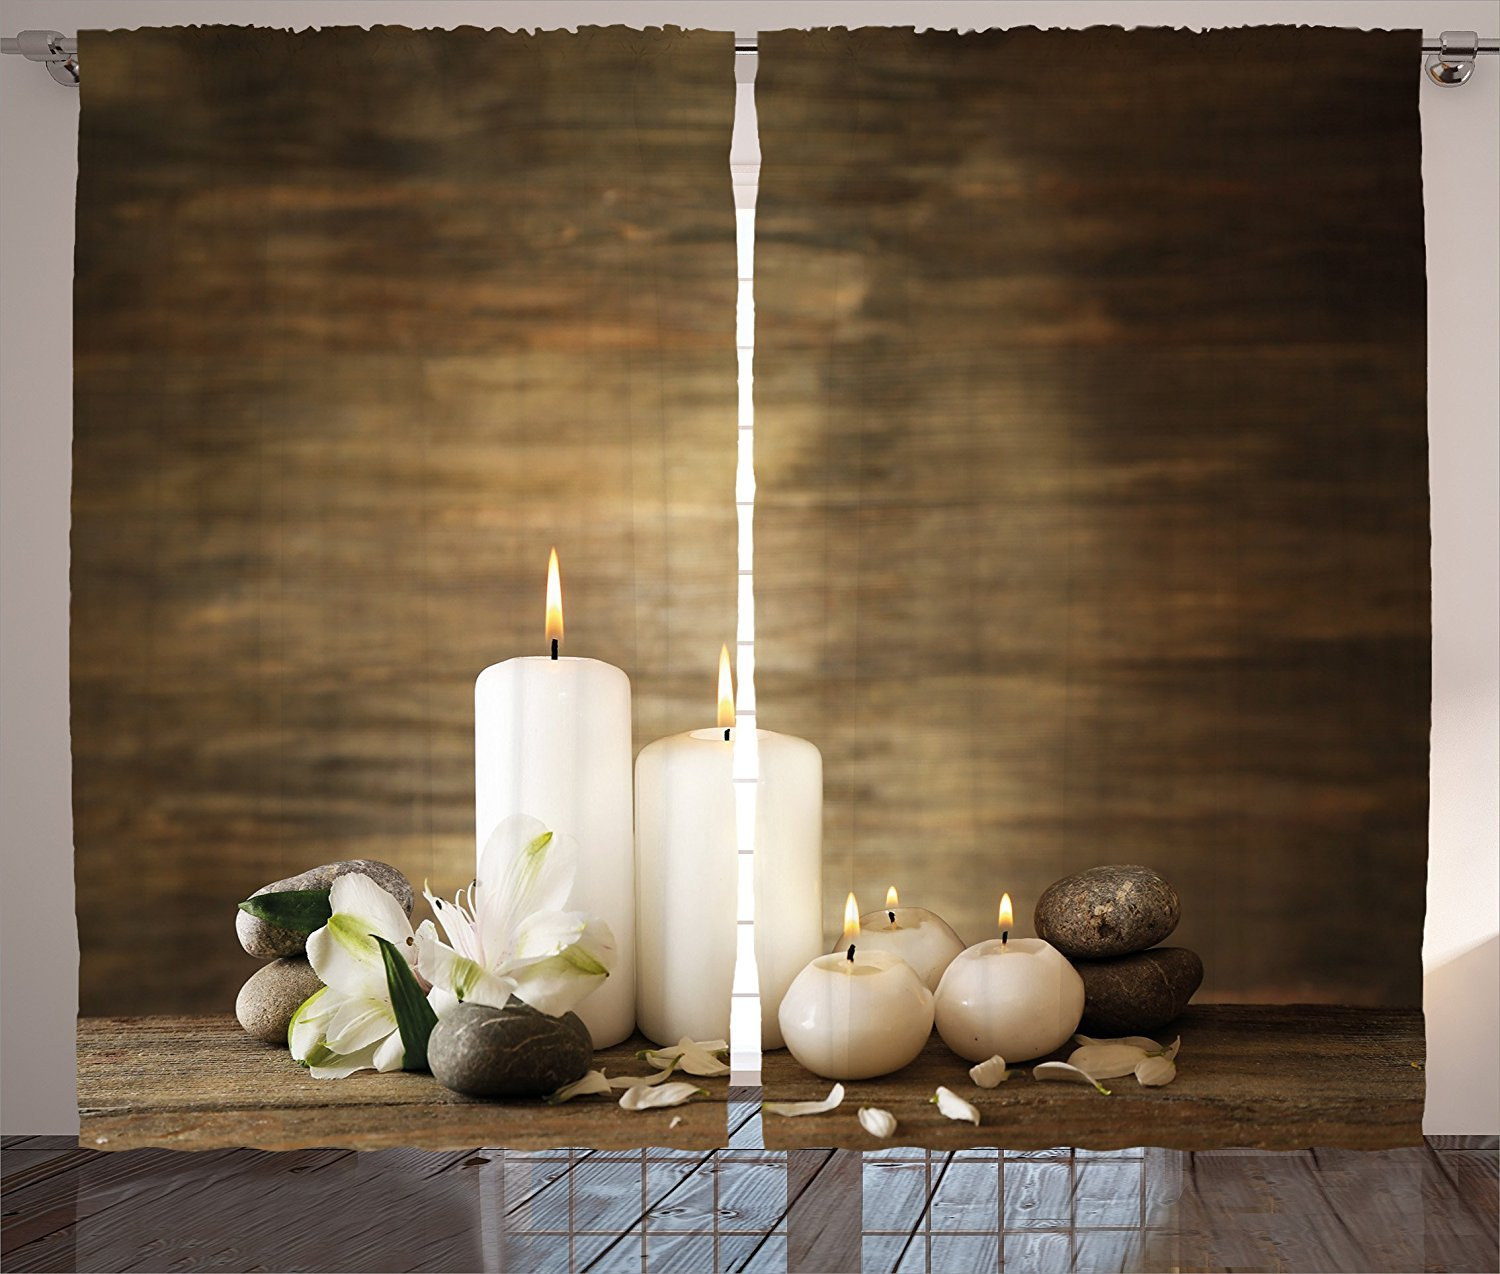 Spa Decor Curtains Composition of Pure Candles Wooden Background with Stones and Flower Petals Living Room Bedroom Window Drapes 2 Panel Set Brown and White by sophiehome (Image #1)